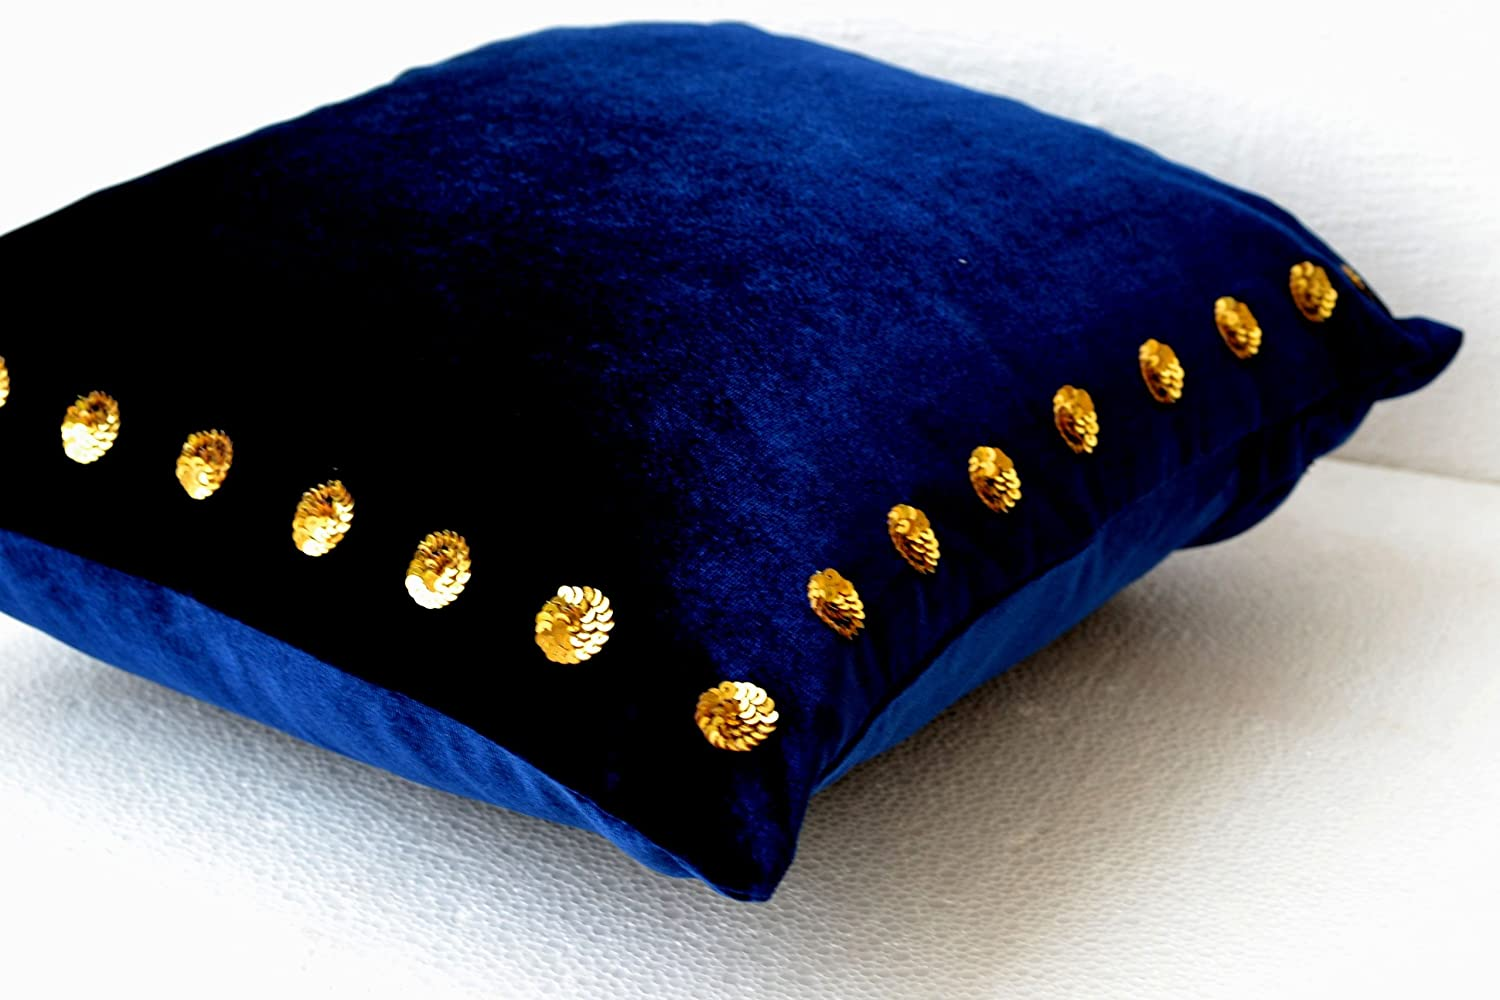 amazoncom navy blue pillow covers navy blue pillow in velvet  - amazoncom navy blue pillow covers navy blue pillow in velvet with goldsequin detail x navy blue throw pillows in velvet toss pillows gift